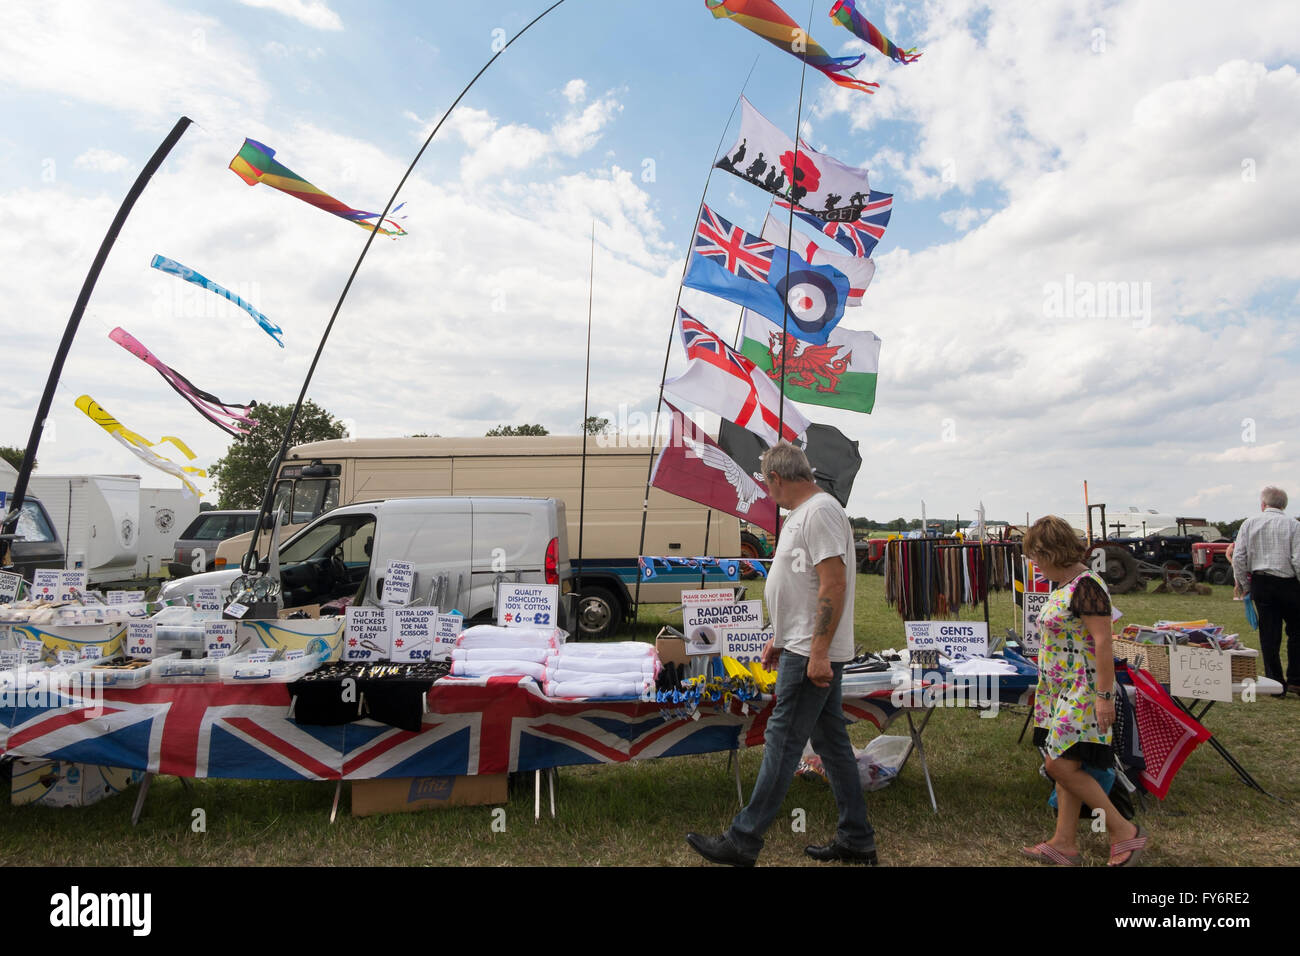 Stall selling flags, bandanas and household goods at the Fairford Steam Rally, Gloucestershire, UK - Stock Image